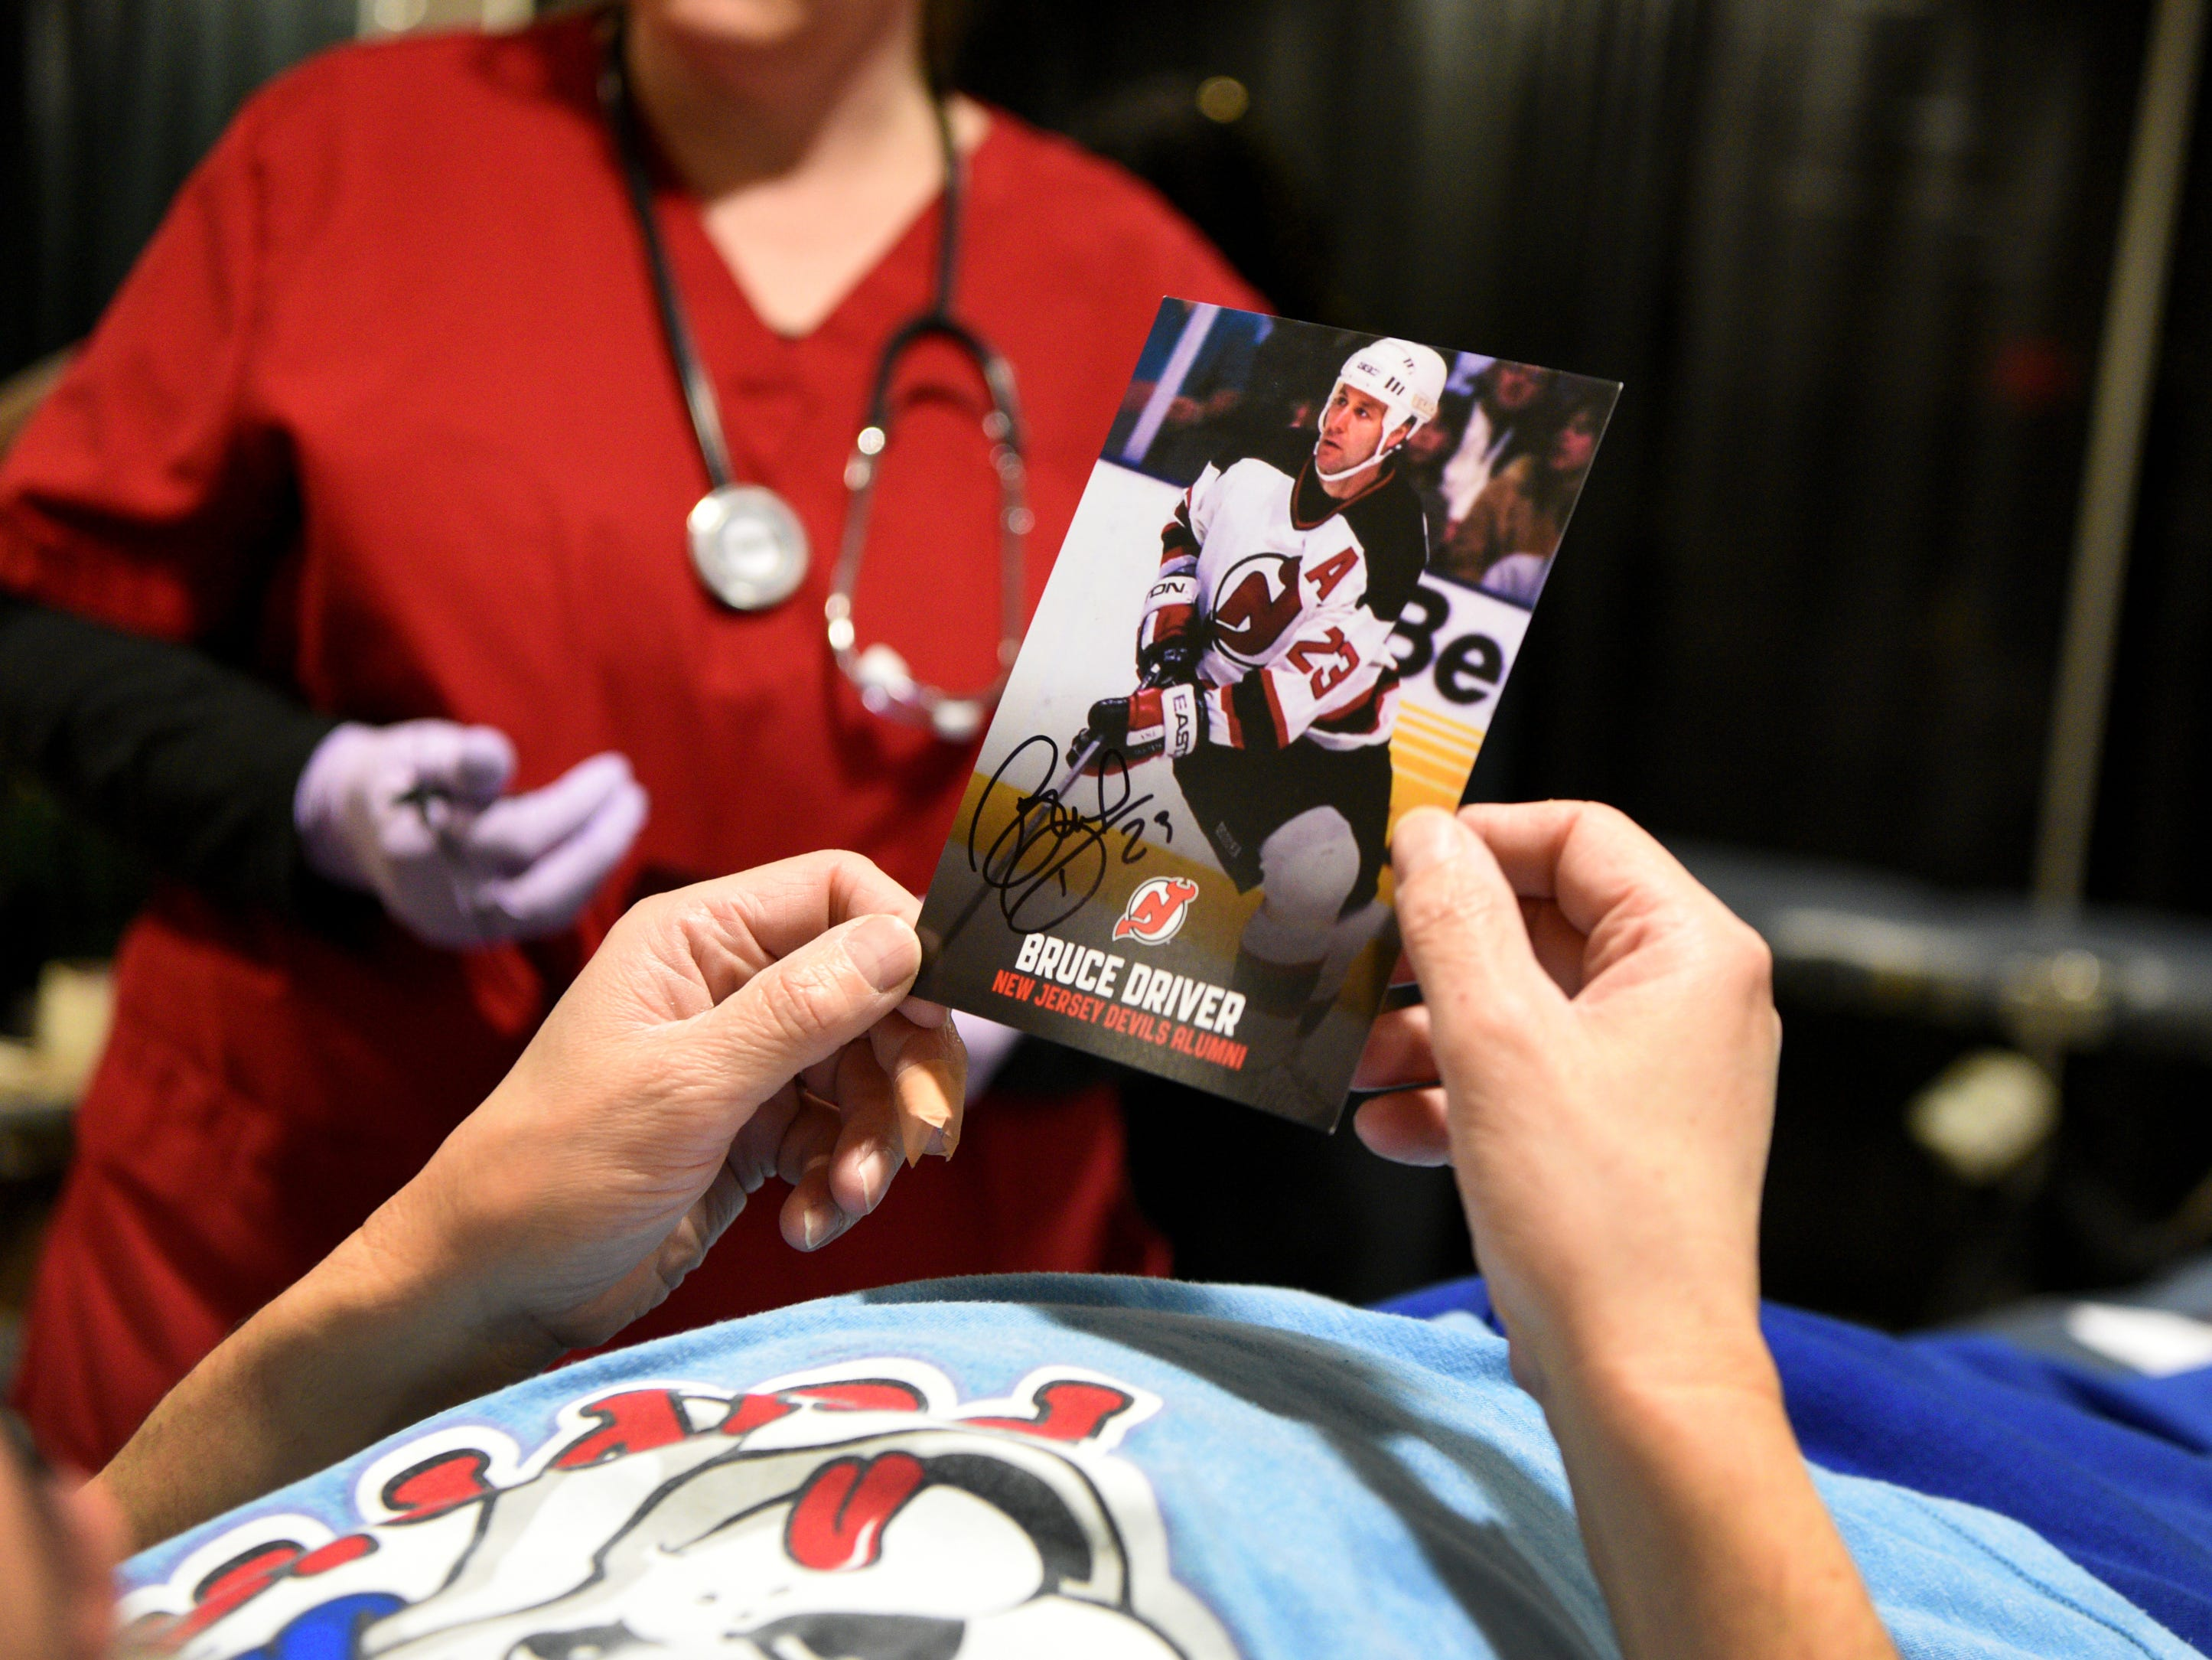 The New Jersey Devils and RWJBarnabas Health hosted their third annual blood drive in coordination with the American Red Cross on Sunday, March 10, 2019 at the Prudential Center in Newark. A blood holds a card autographed by  Devils' alumni Bruce Driver, a member of the 1995 Devils Stanley Cup winning team.